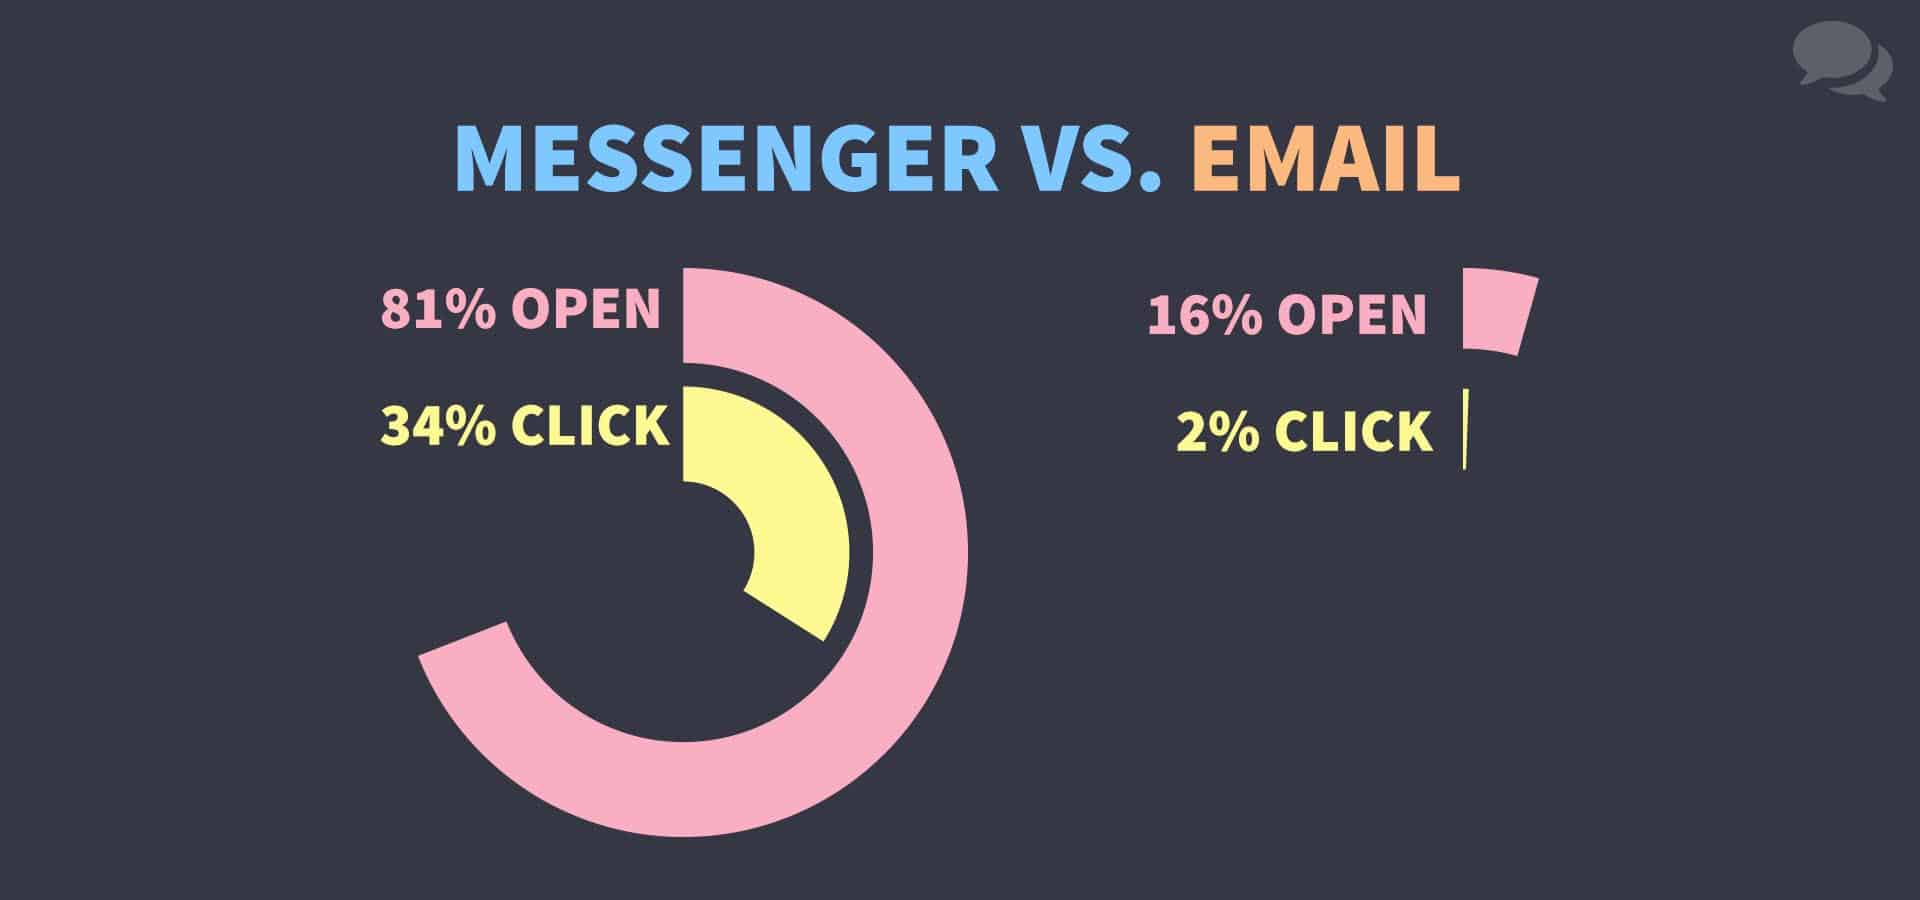 Messenger vs email engagement rates show that Messenger is more than 10x more effective than email. Messenger gets 81% open-rates and 34% click-through rates, while email has only 16% open rates and 2% click-through rates.